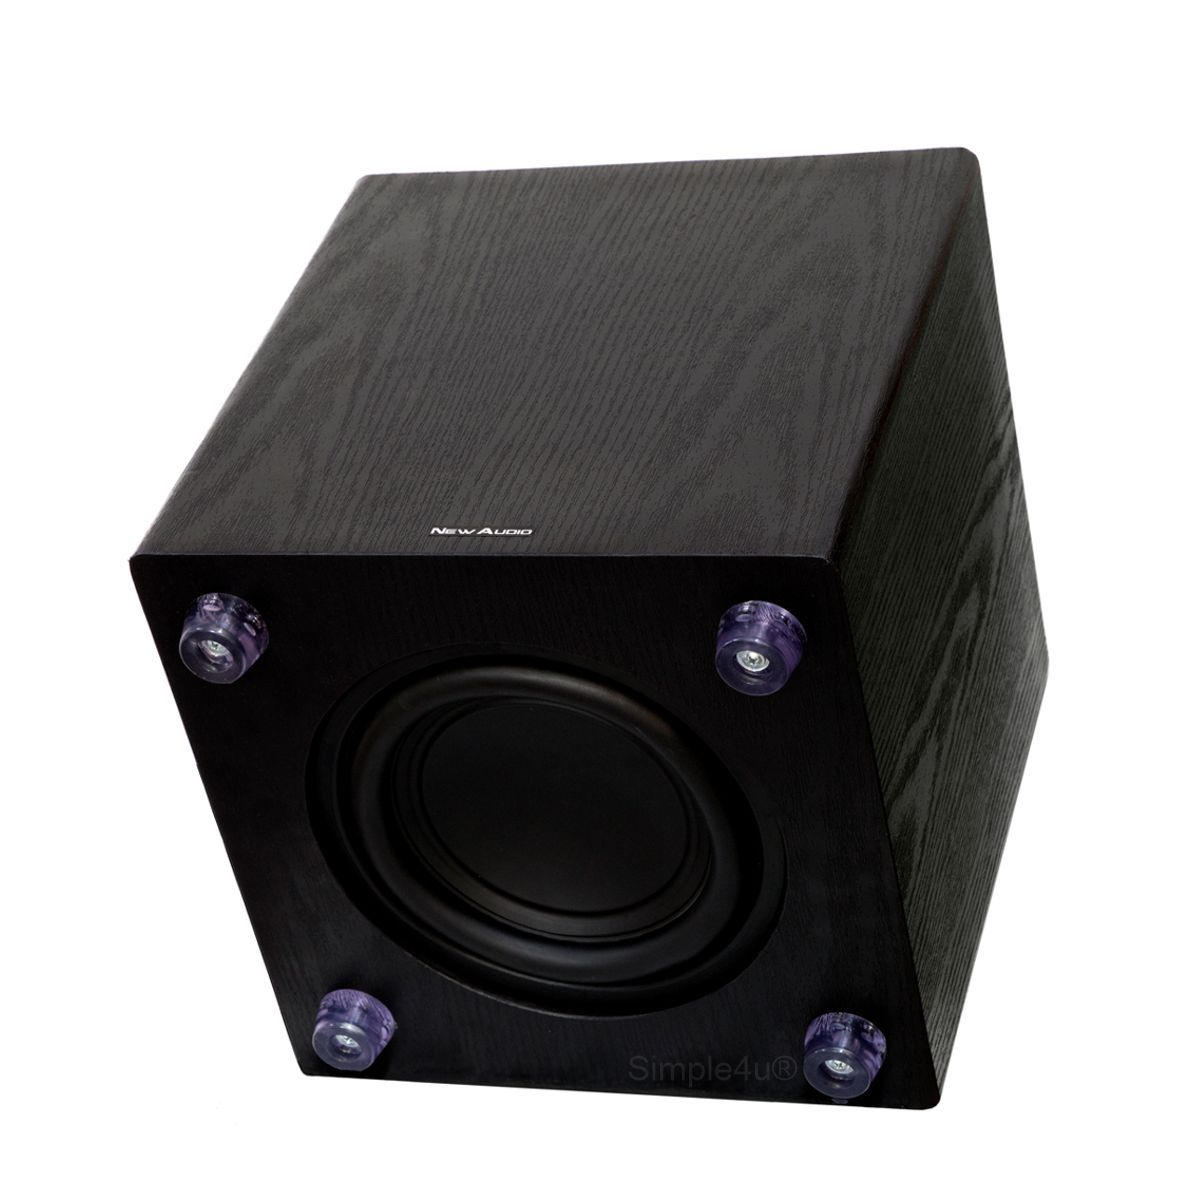 "Subwoofer Ativo 12"" 200W RMS Clean Design Black Piano SUB200 12 New Audio"